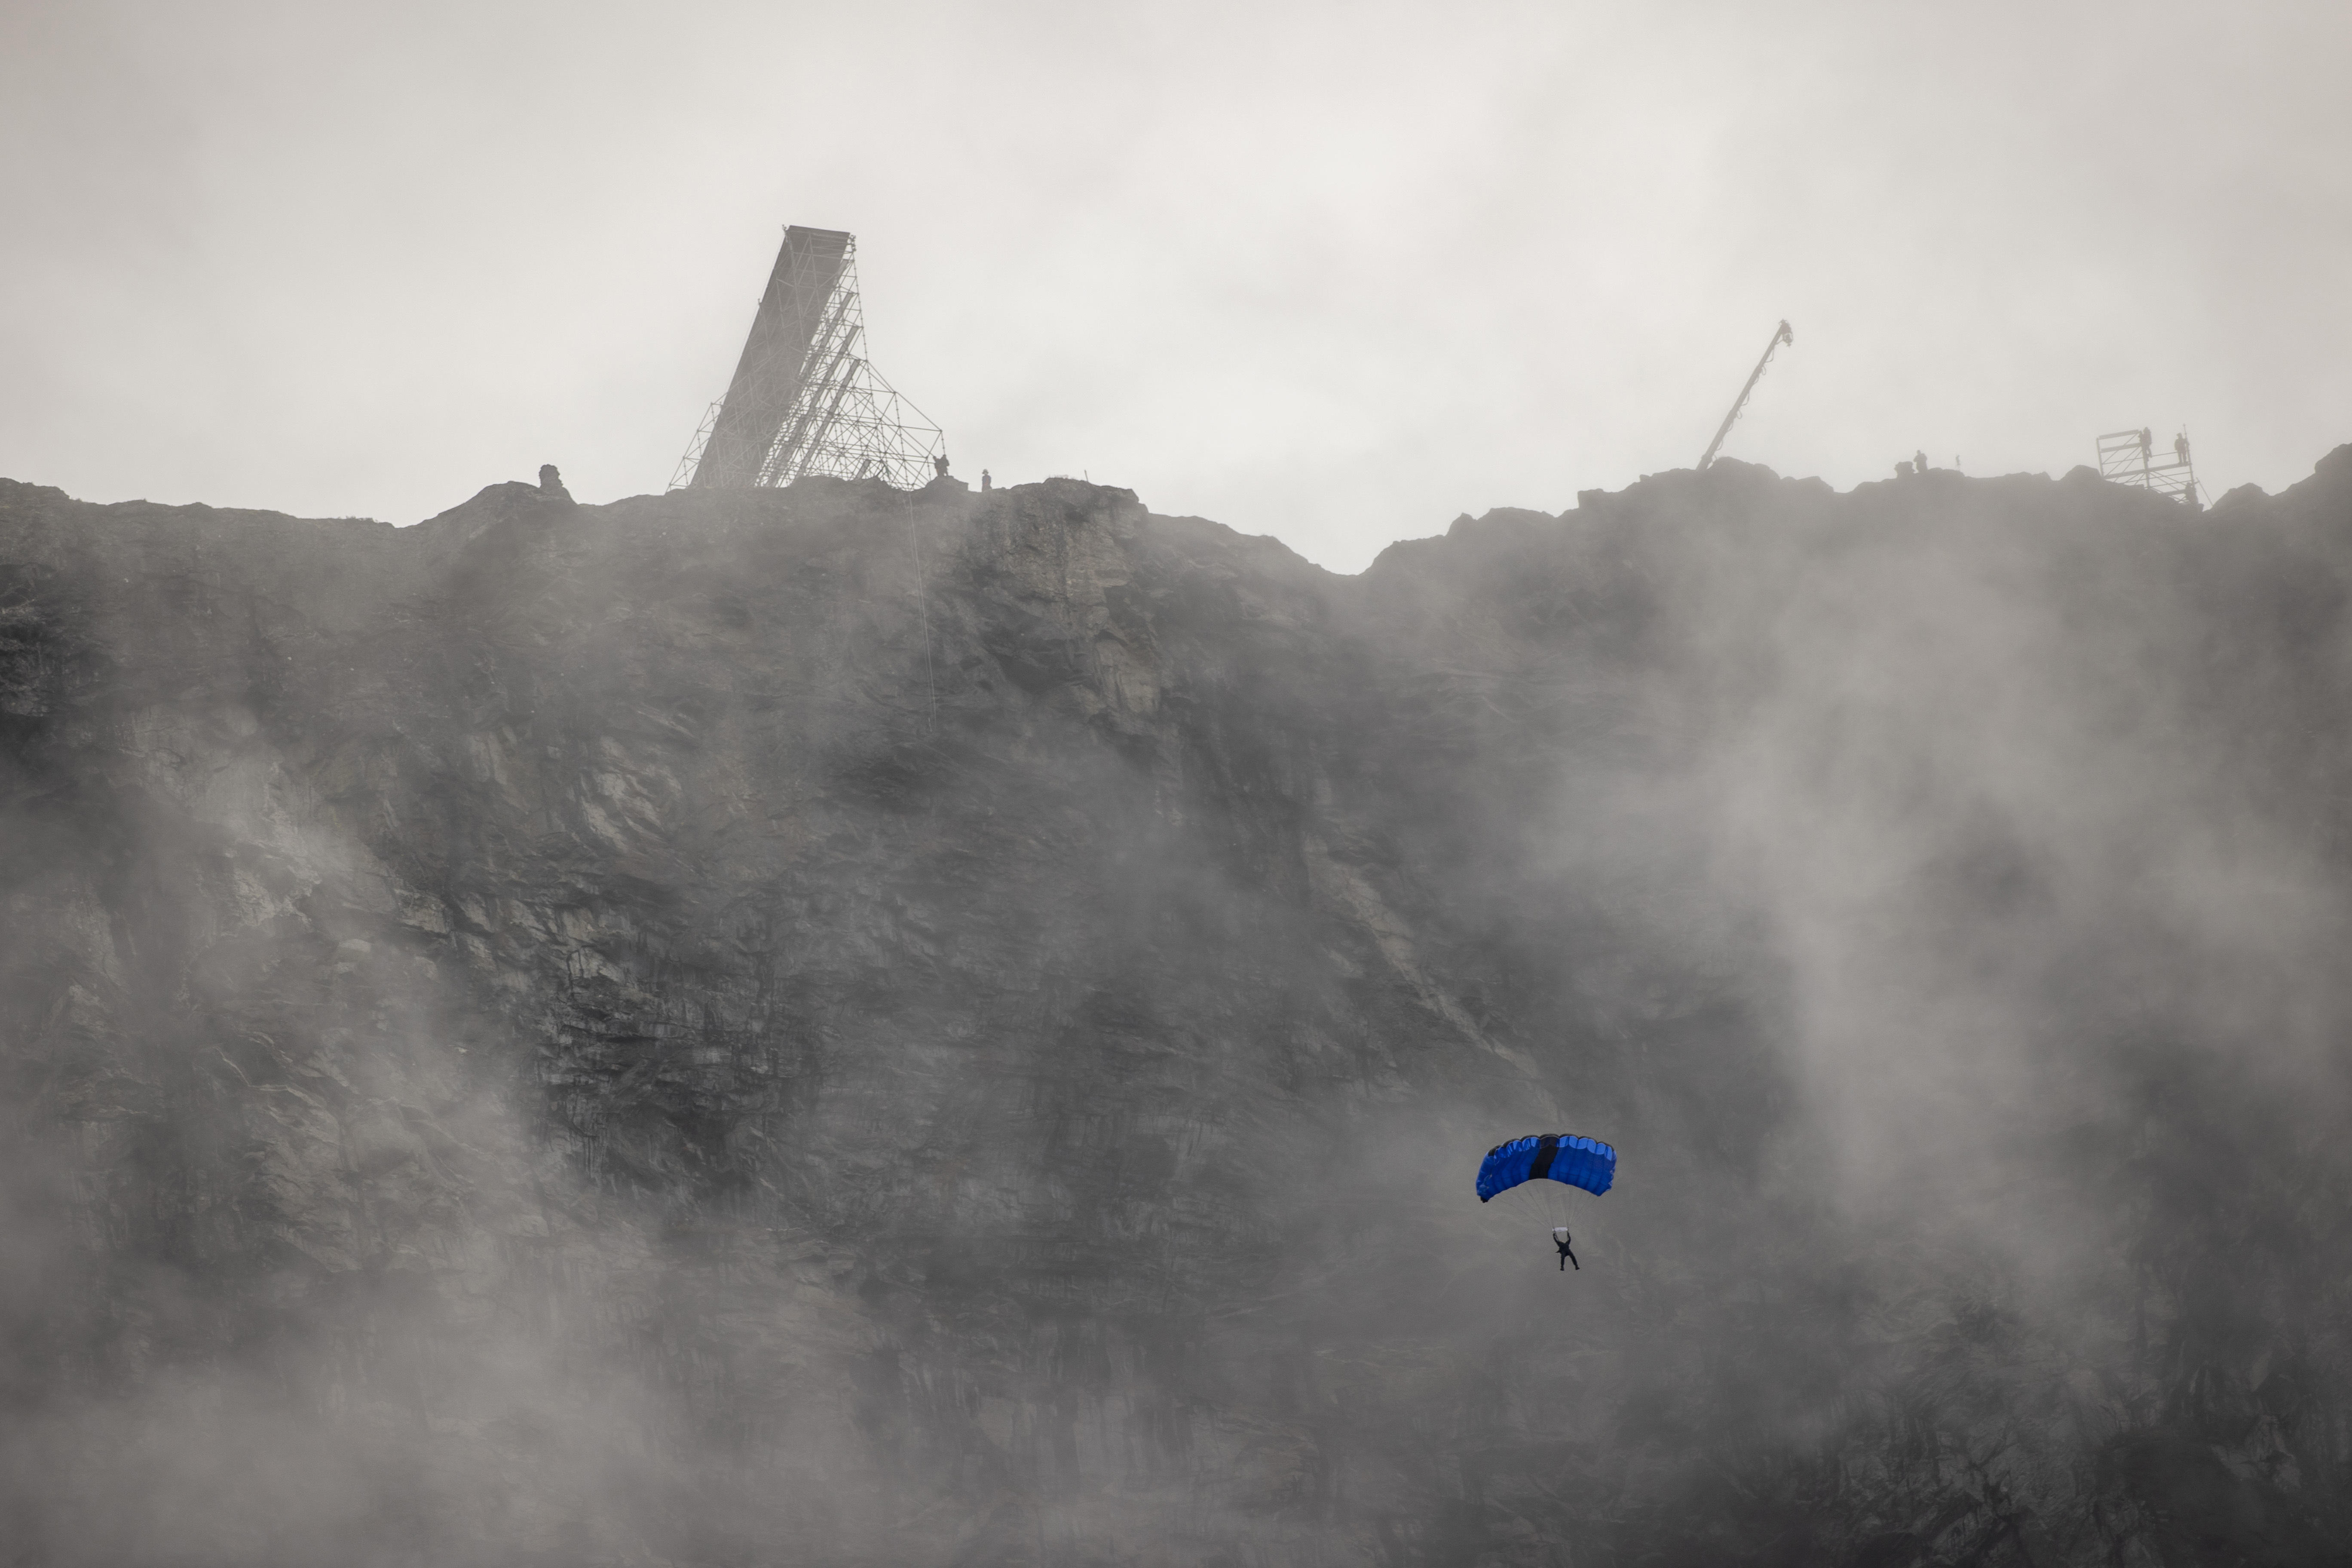 """Actor Tom Cruise during a parachute jump down the mountain Helsetkopen near to Hellesylt, Norway, during the recording of the next """"Mission: Impossible"""" film, Sunday Sept. 6, 2020.  After several days of waiting, the action hero completed four jumps with a motorcycle out of a huge ramp on the mountain top Helsetkopen near Hellesylt, Norway.  The bikes fell to the ground while Cruise landed by parachute down the steep mountainside. (Geir Olsen / NTB scanpix via AP)"""